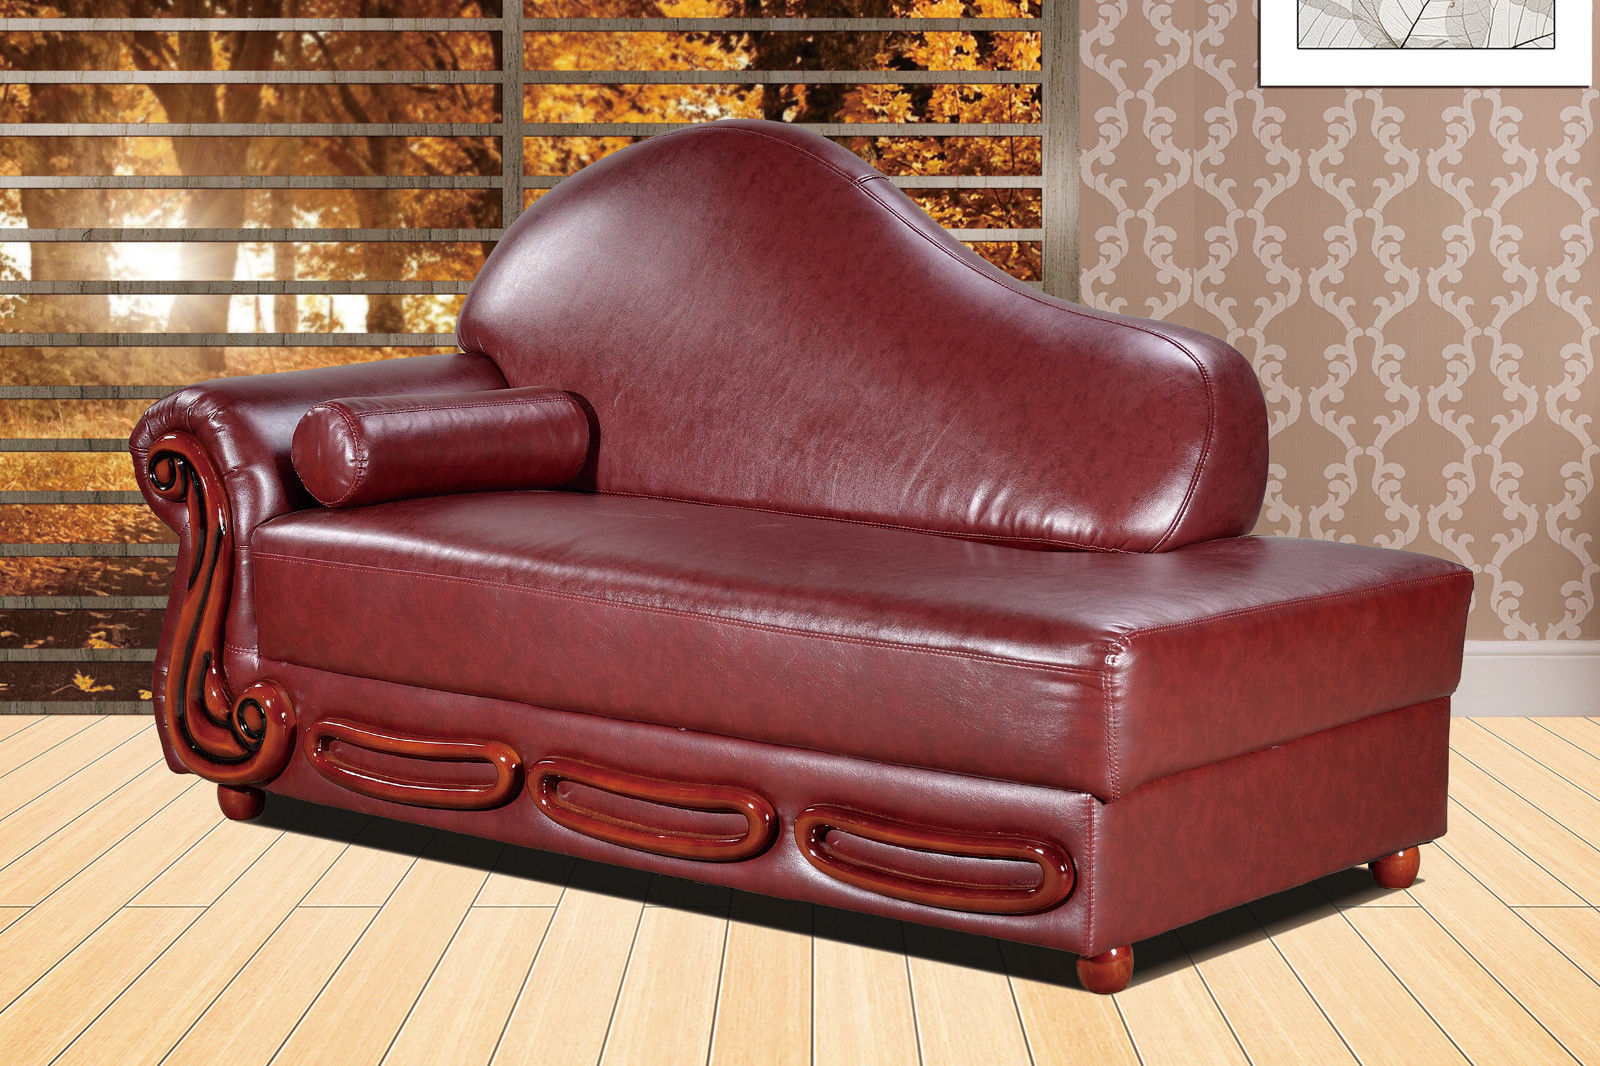 Meridian 632 Bella Living Room Chaise in Cognac Bonded Leather Traditional Style